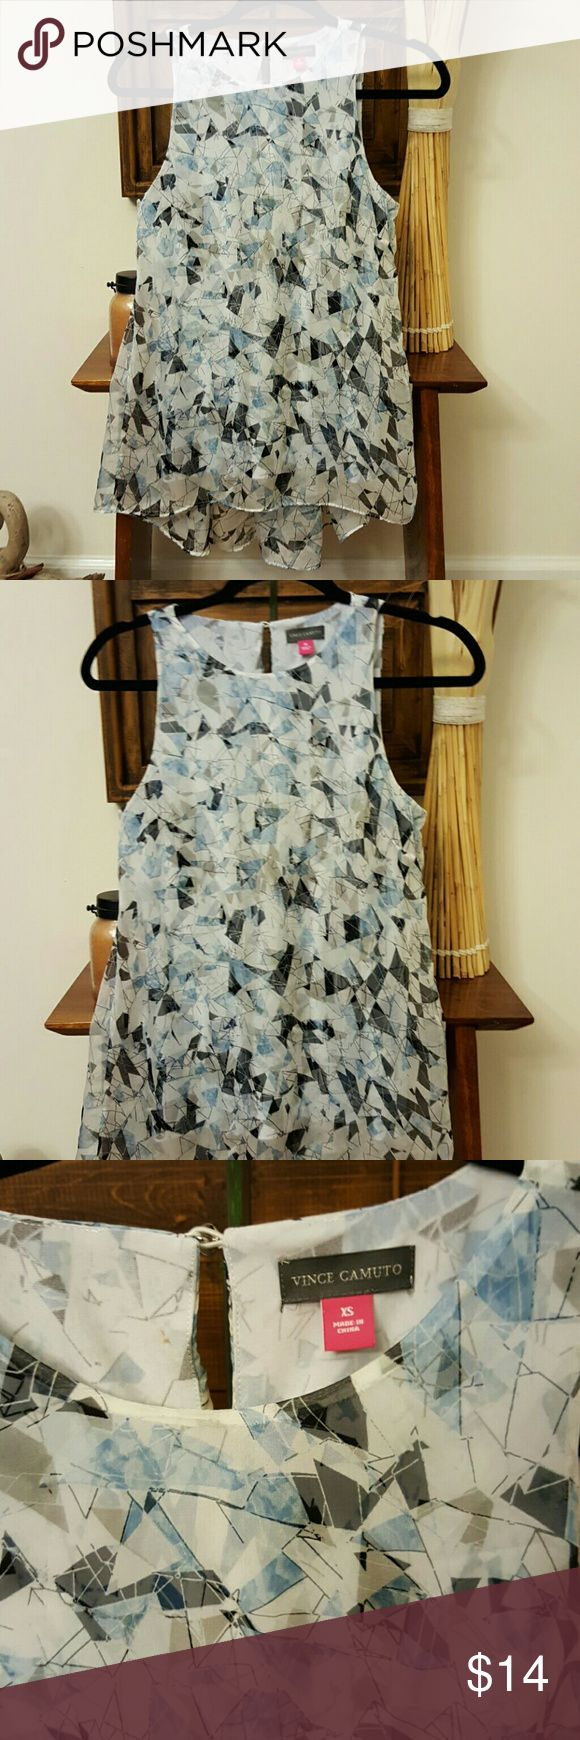 Beautiful tunic. Hues of blue and white Cami style interior with sheer, flowing fabric outside. Great look with leggings. Excellent condition, has one very small spot on inside  next to tag that is not visible when on. Very pretty. Vince Camuto Tops